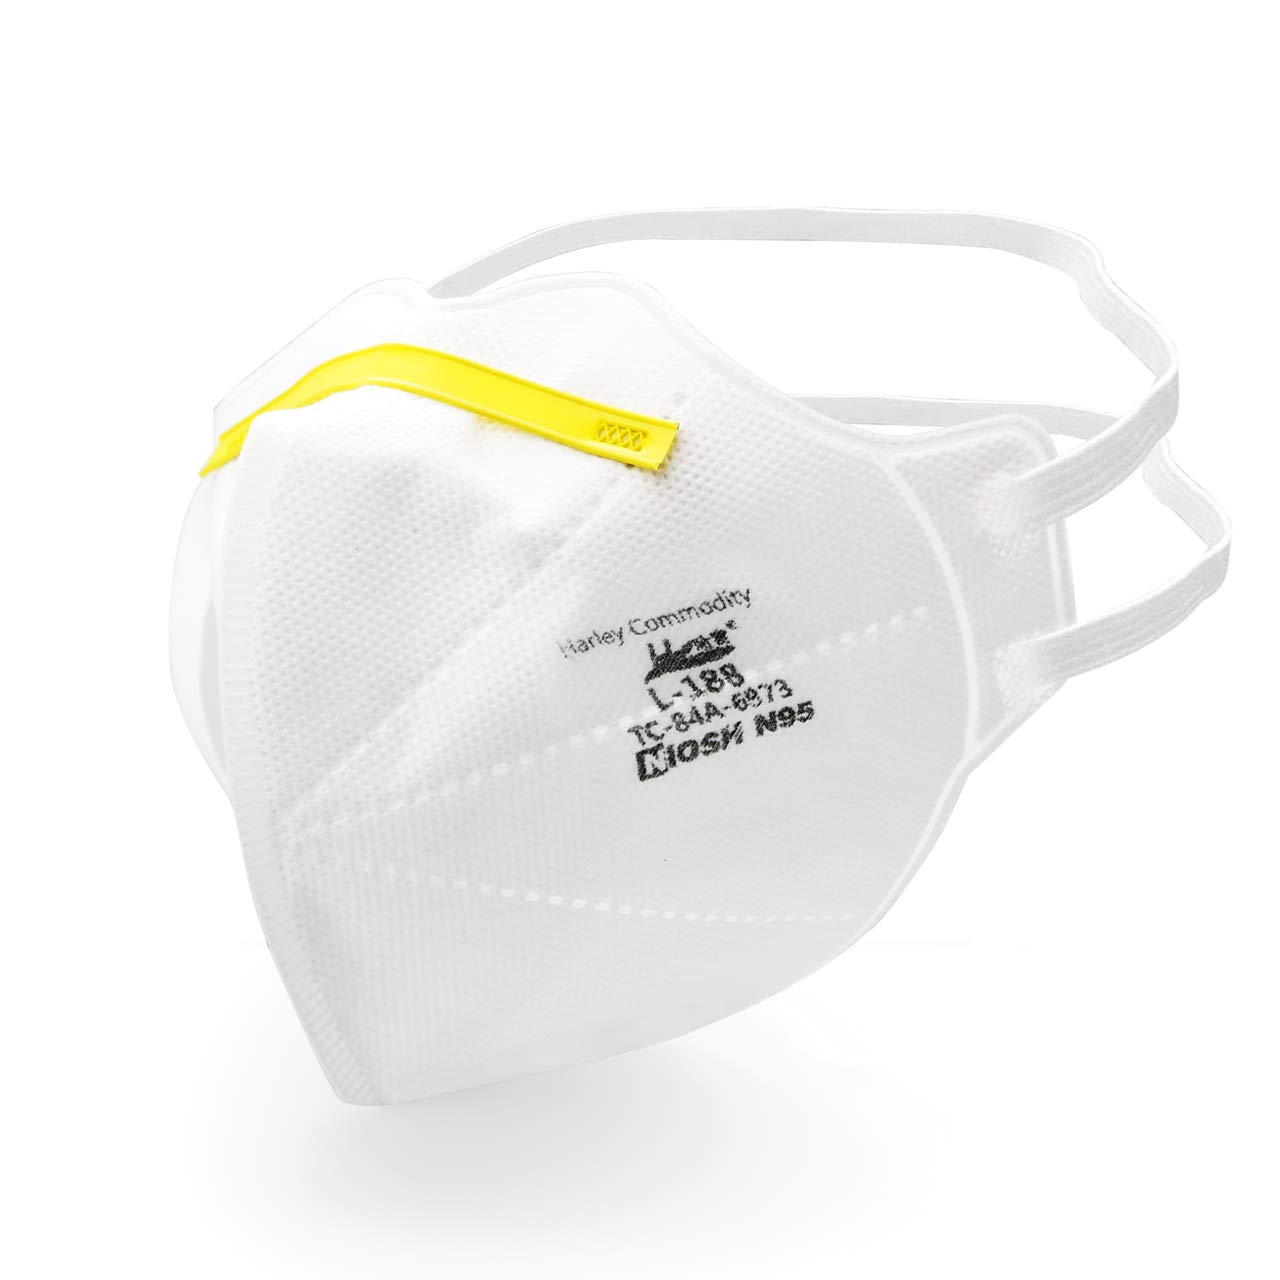 Nextirrer NIOSH Certified N95 Respirator Mask - Pack of 20 Mask